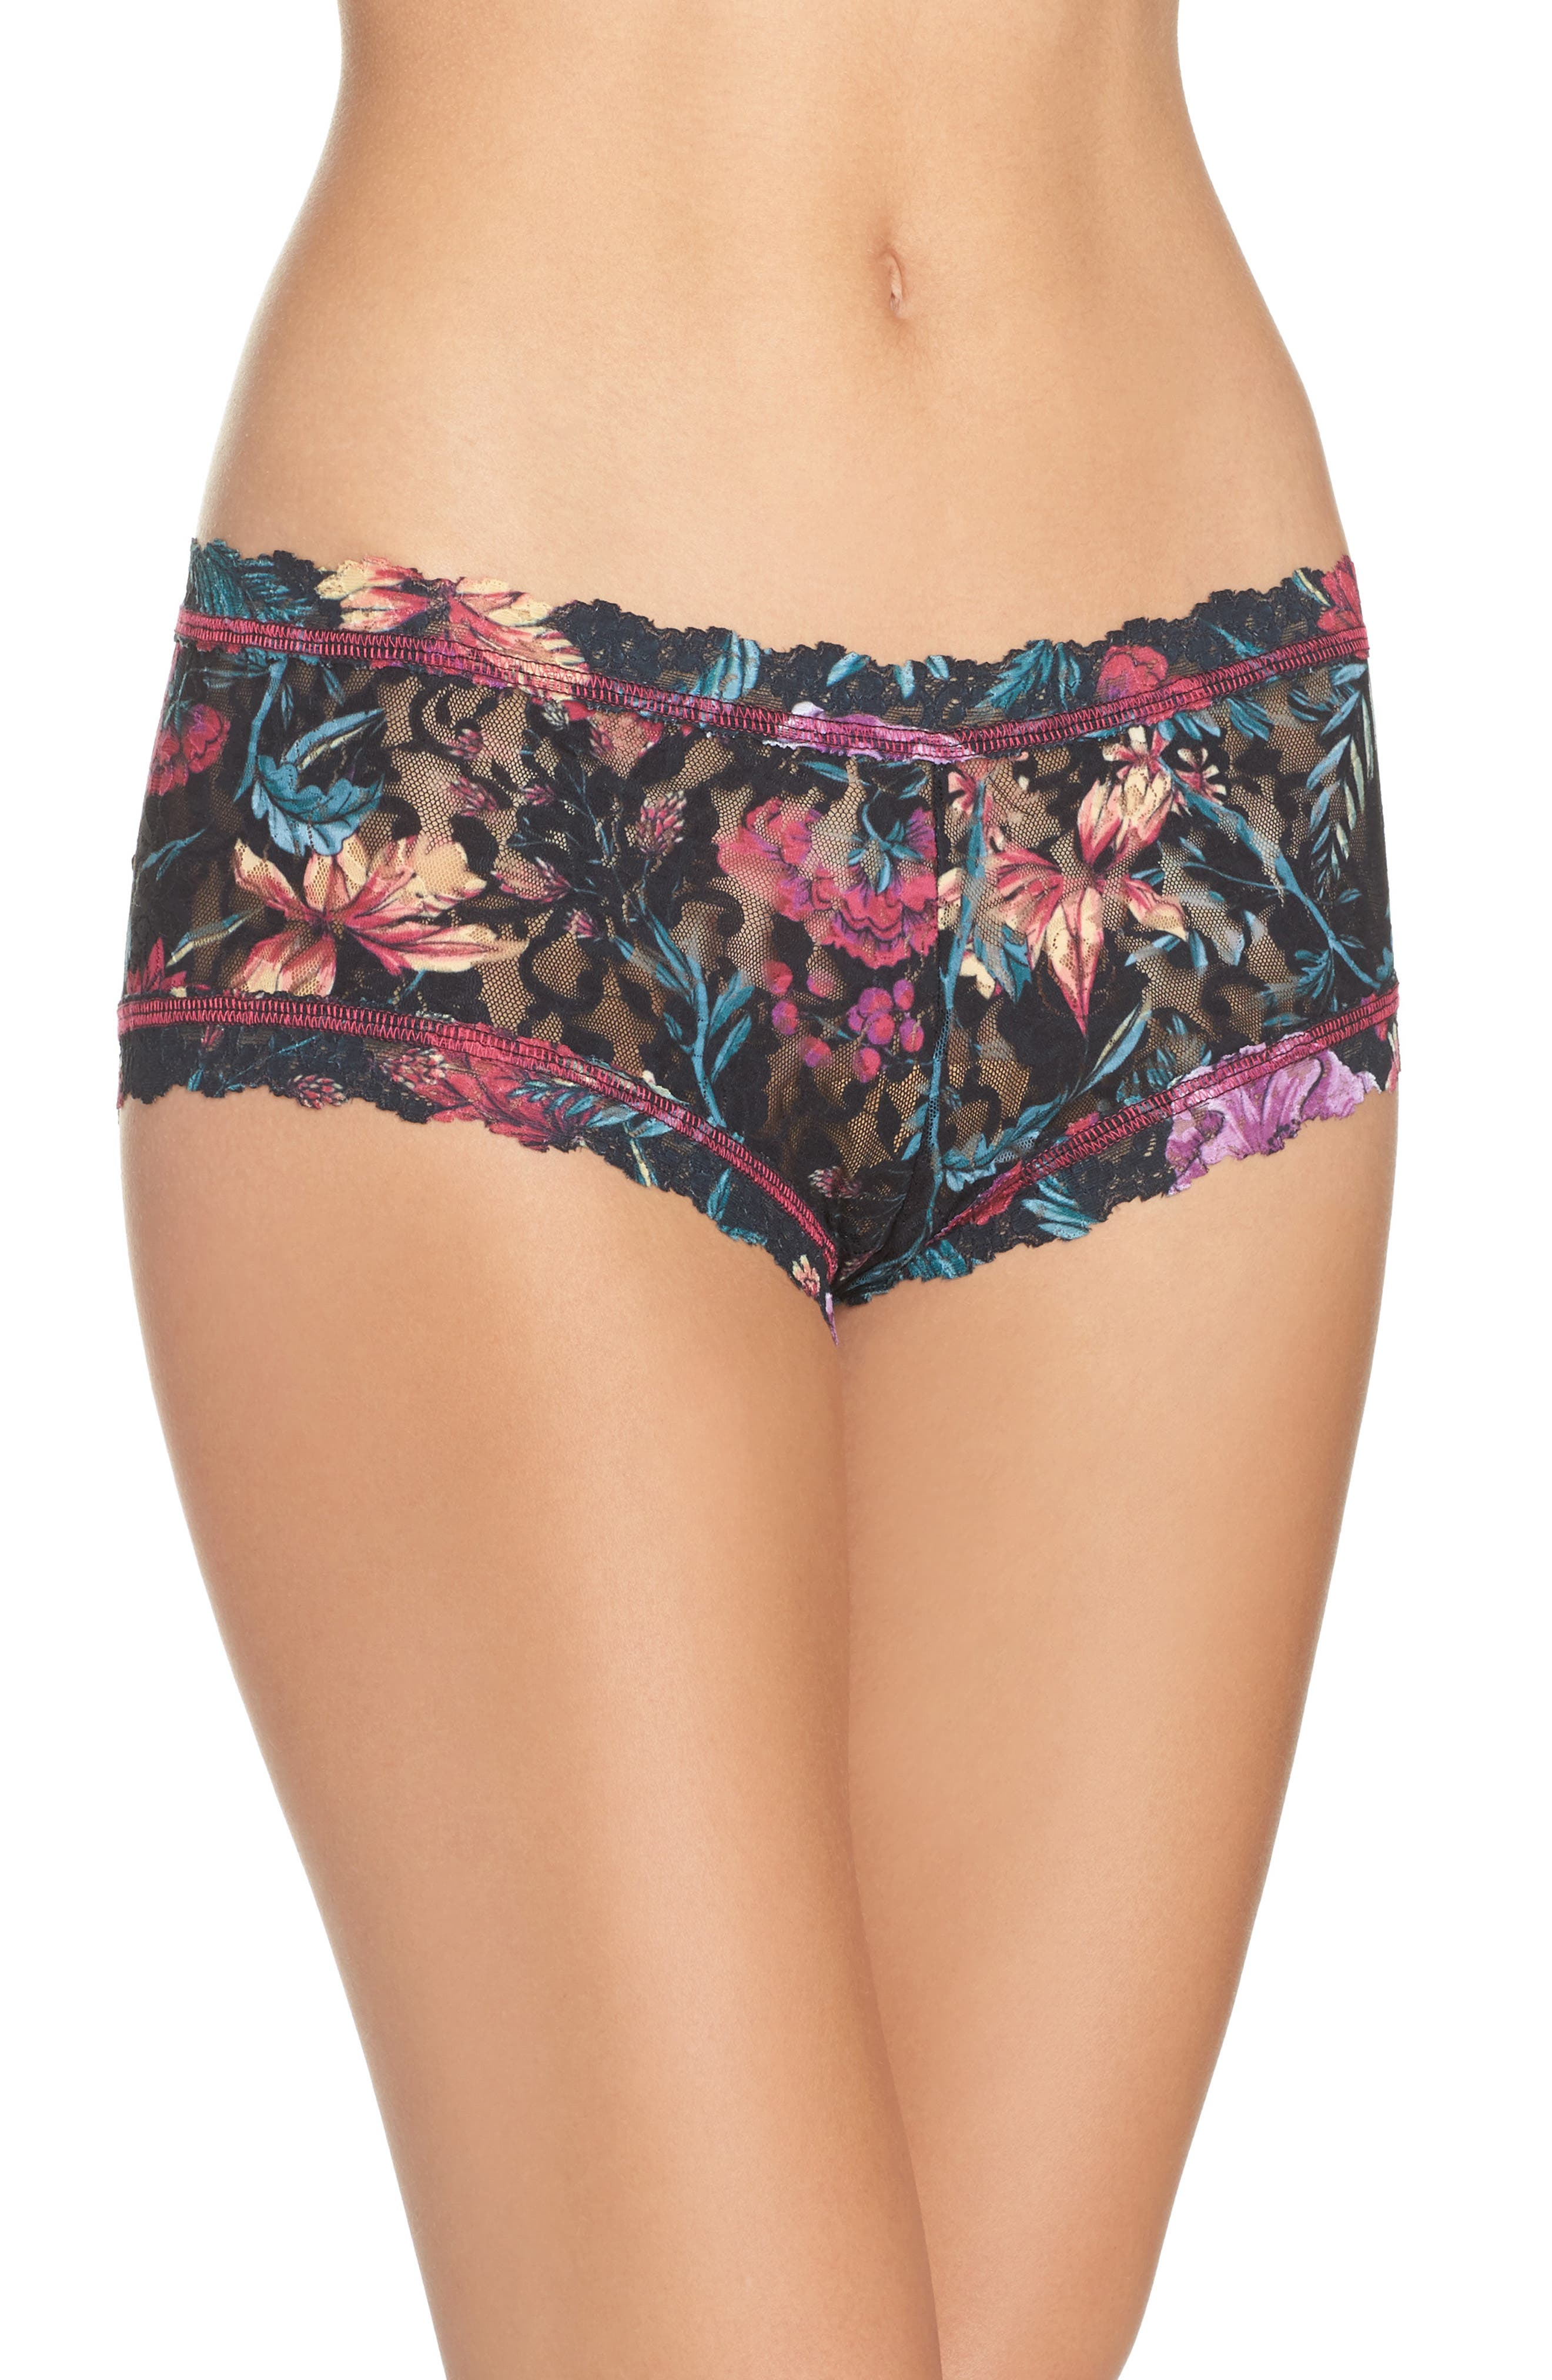 Moody Blooms Boyshorts,                             Main thumbnail 1, color,                             001